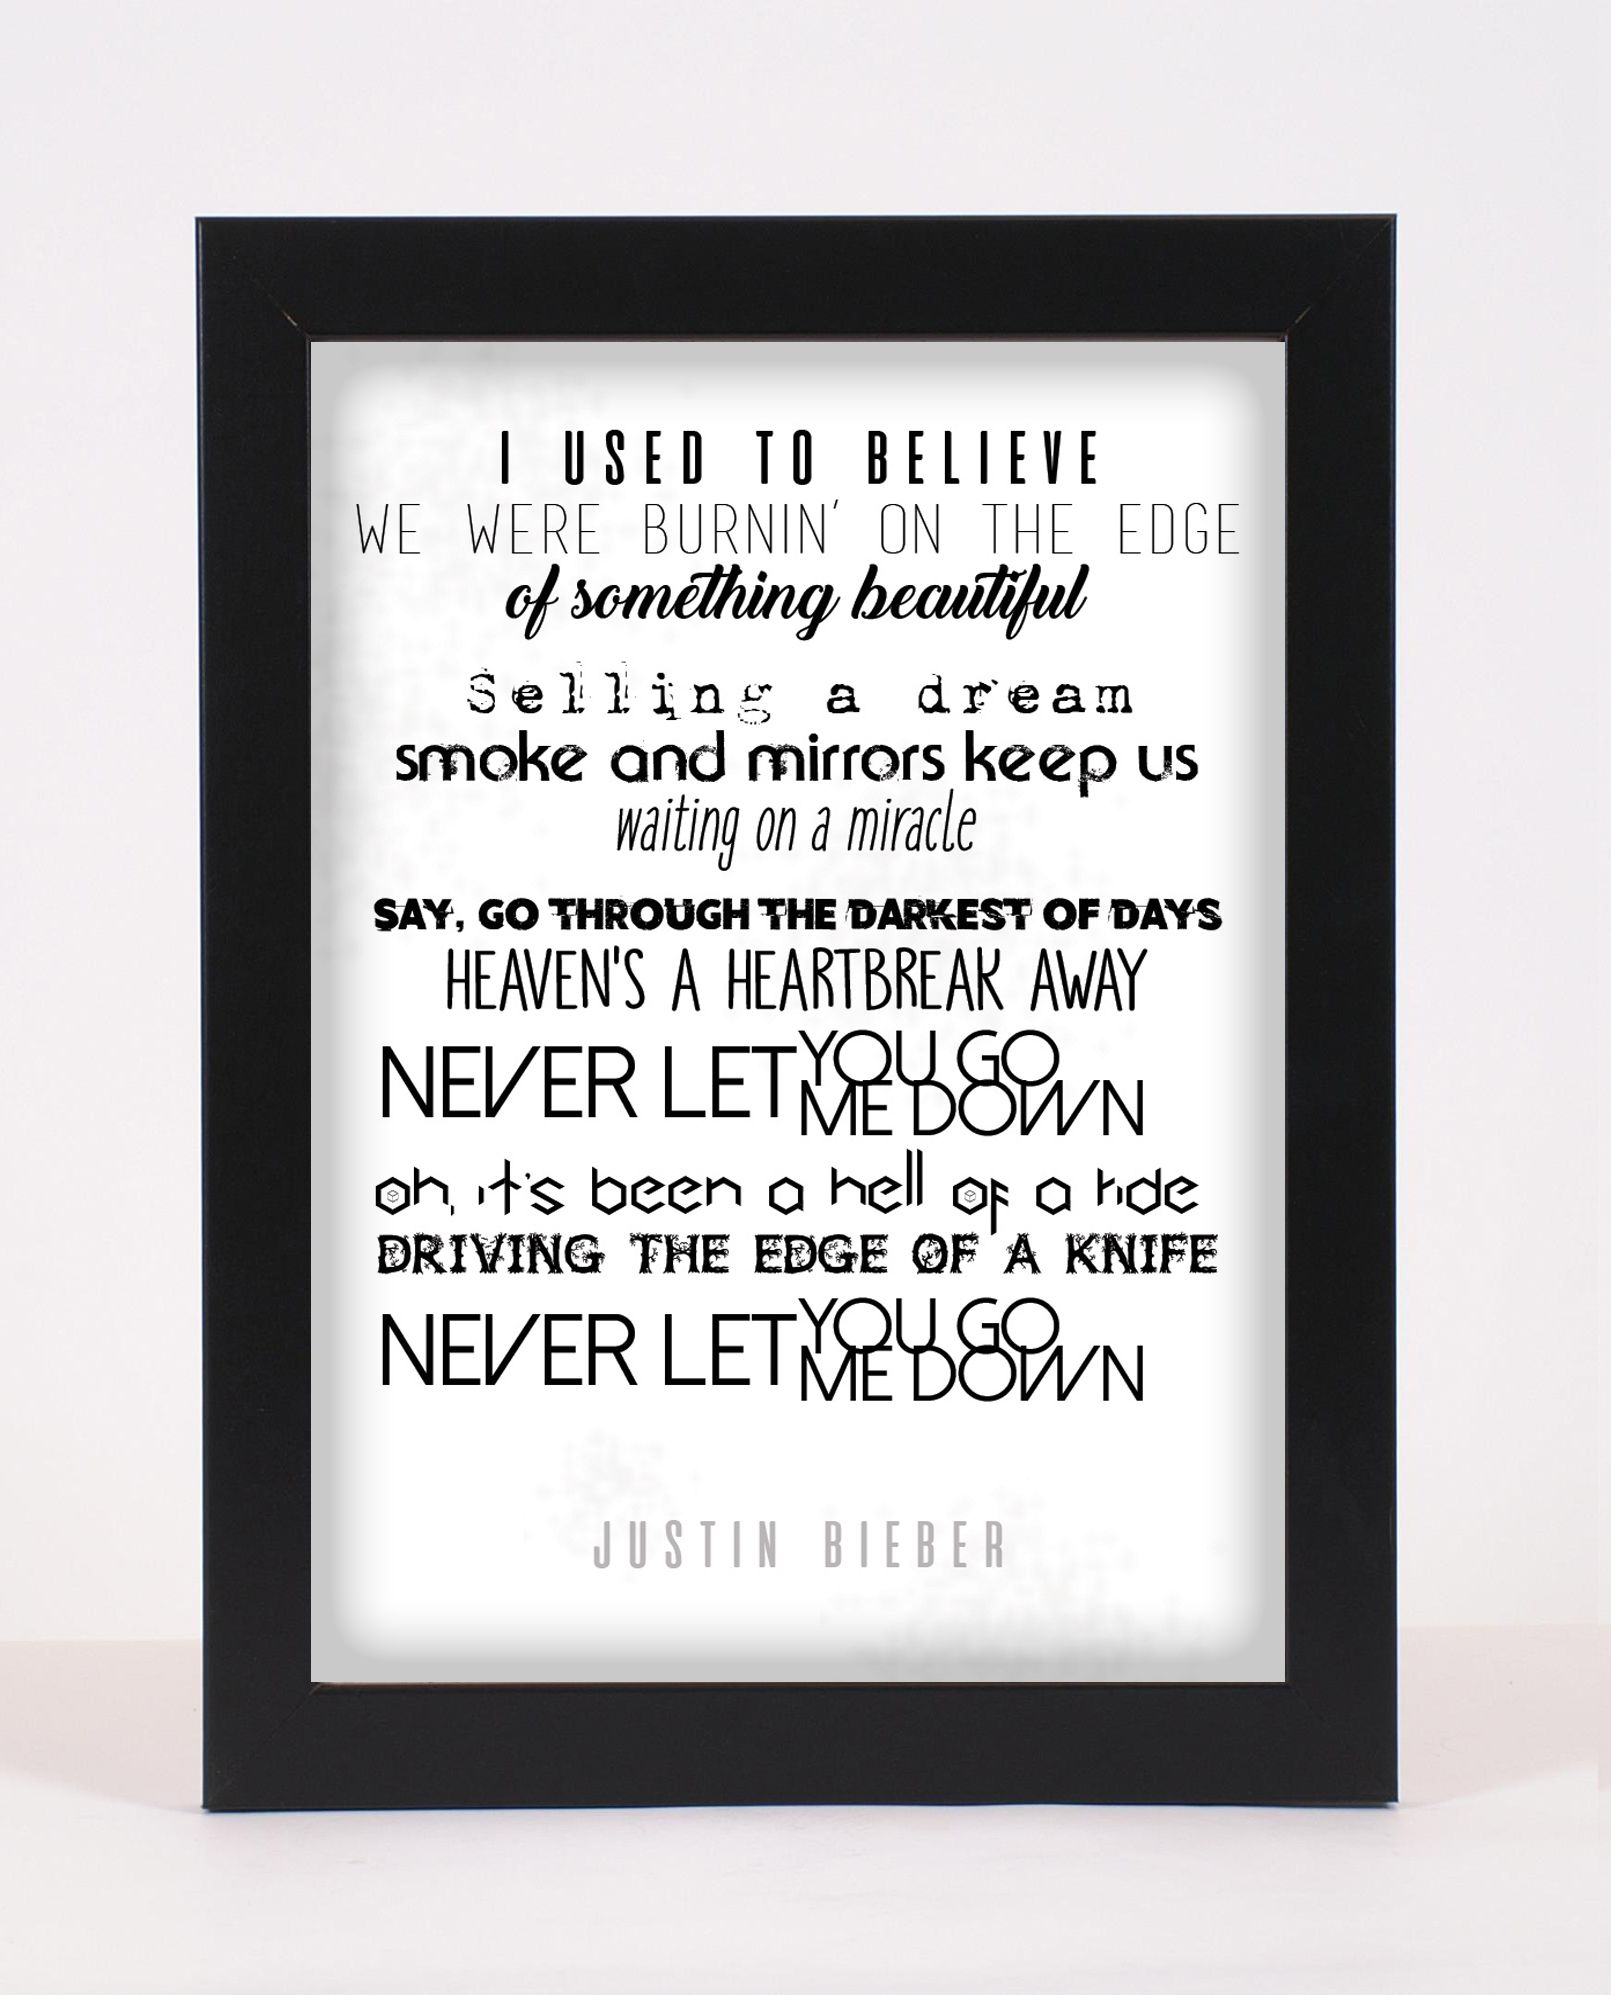 Justin Bieber - Let Me Love You Lyric Poster. Visit Pop and Indie Prints for high quality printed typography posters. LINK: https://www.etsy.com/uk/listing/470925604/justin-bieber-let-me-love-you-pop-and?ref=shop_home_active_3 VISIT THE SHOP NOW AT: www.etsy.com/shop/popandindieprints and keep up to date with new additions, or to message for a custom made poster of your favourite lyrics, free of charge! VISIT THE FACEBOOK PAGE AT: www.facebook.com./popandindieprints